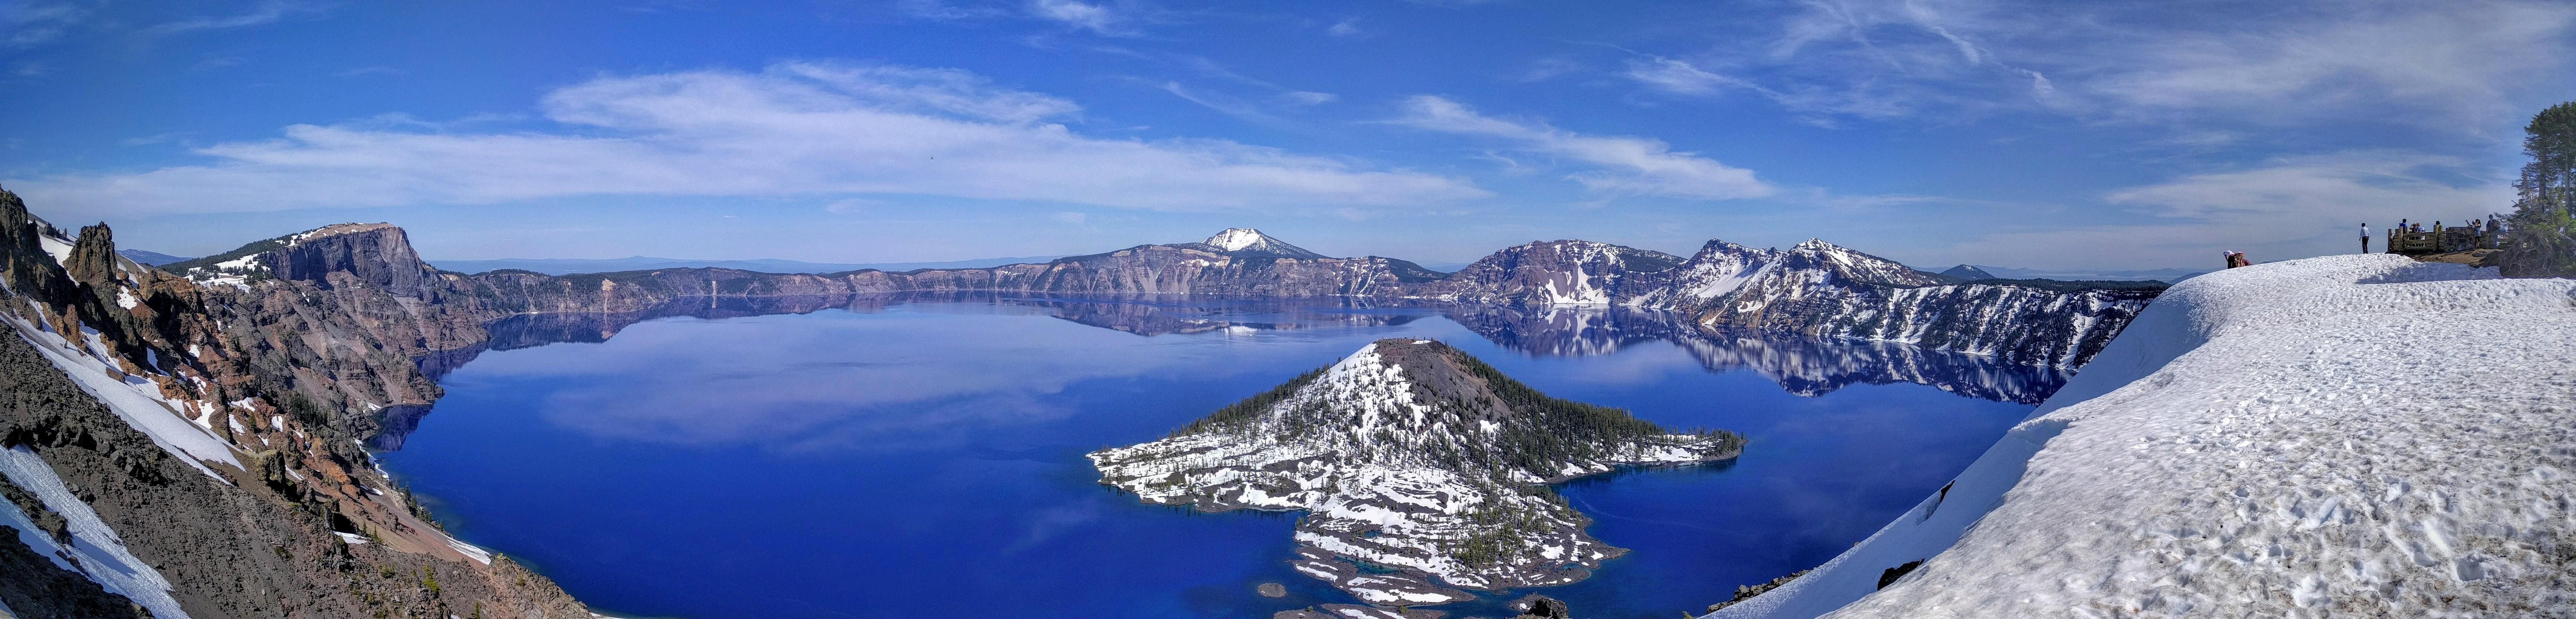 Watchman Overlook Crater Lake Oregon USA [OC][7426x1784] #craterlakeoregon Watchman Overlook Crater Lake Oregon USA [OC][7426x1784] #craterlakeoregon Watchman Overlook Crater Lake Oregon USA [OC][7426x1784] #craterlakeoregon Watchman Overlook Crater Lake Oregon USA [OC][7426x1784] #craterlakeoregon